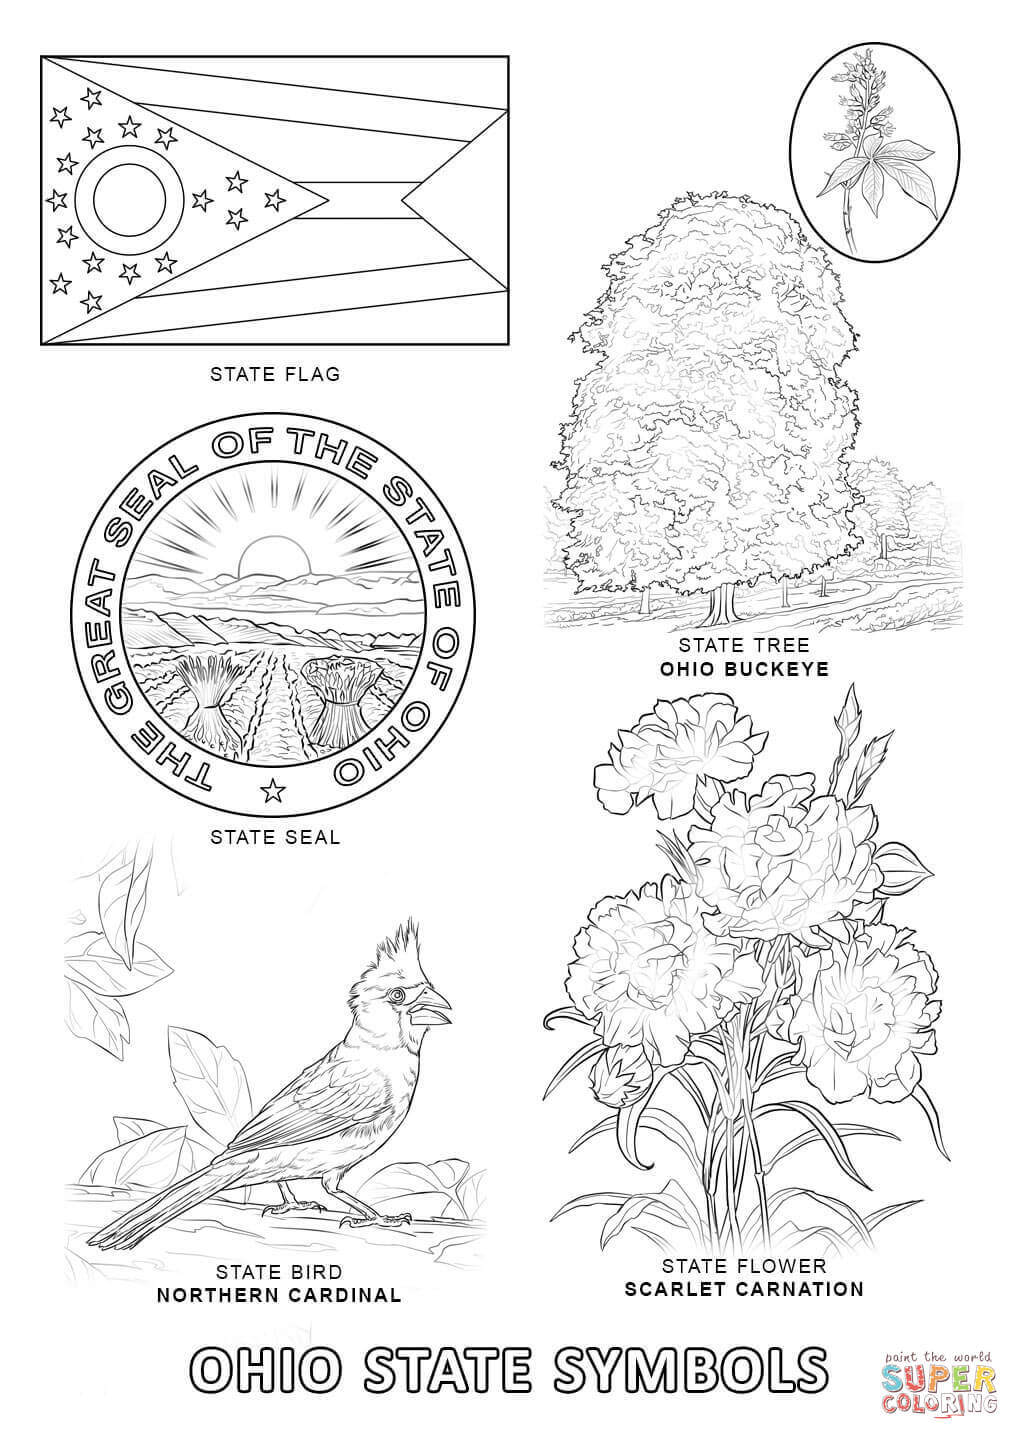 Ohio State Symbols coloring page | Free Printable Coloring Pages